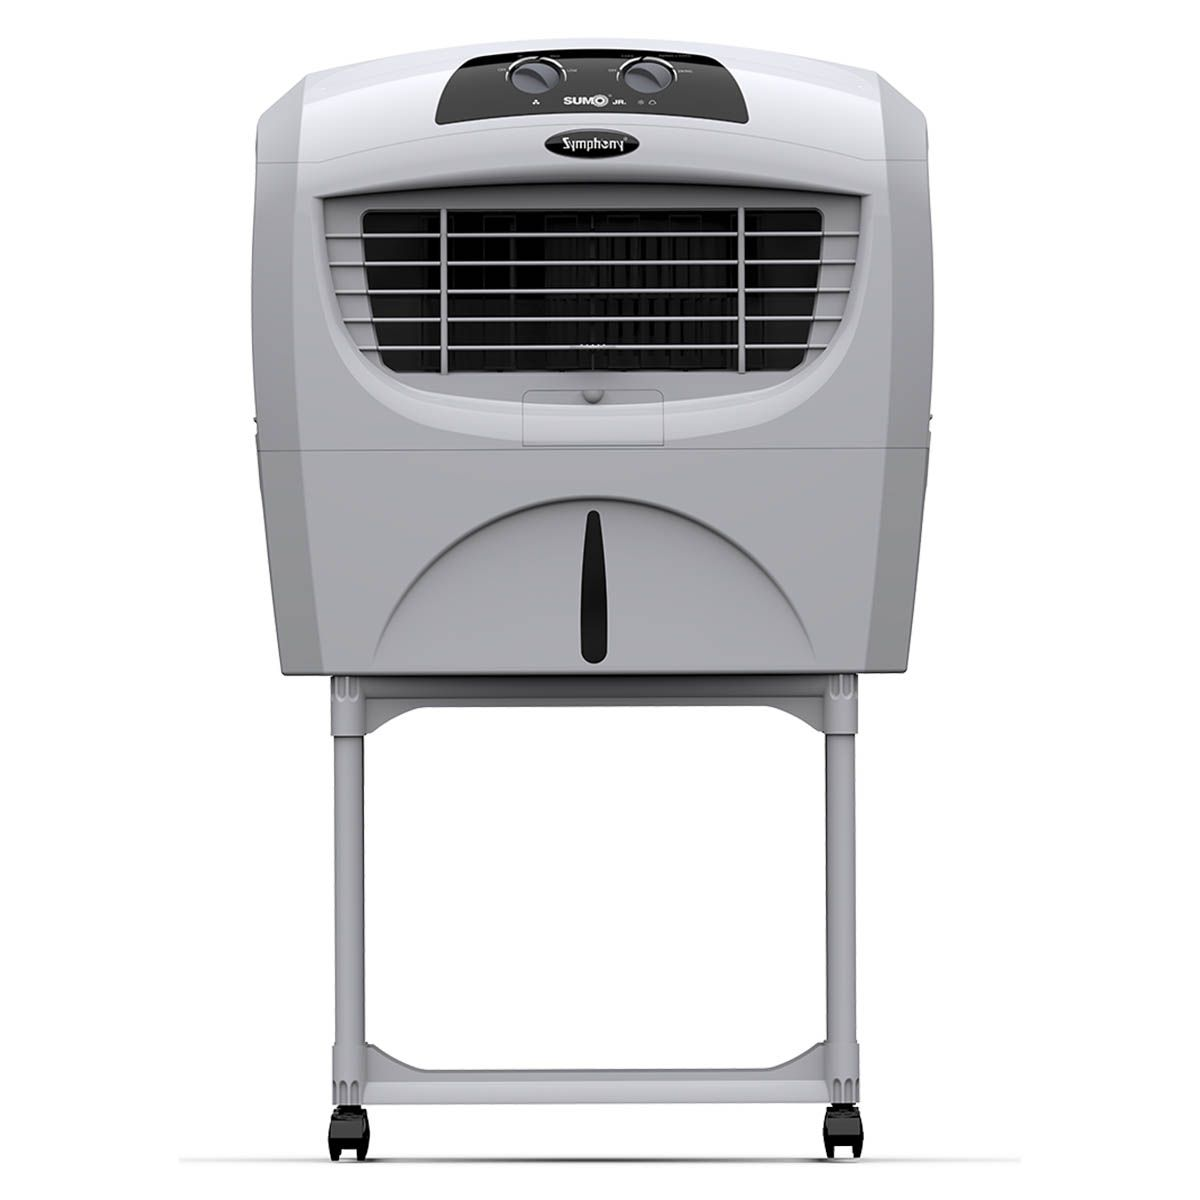 Symphony Sumo Jr. Portable Desert Air Cooler 45-litres with Trolley